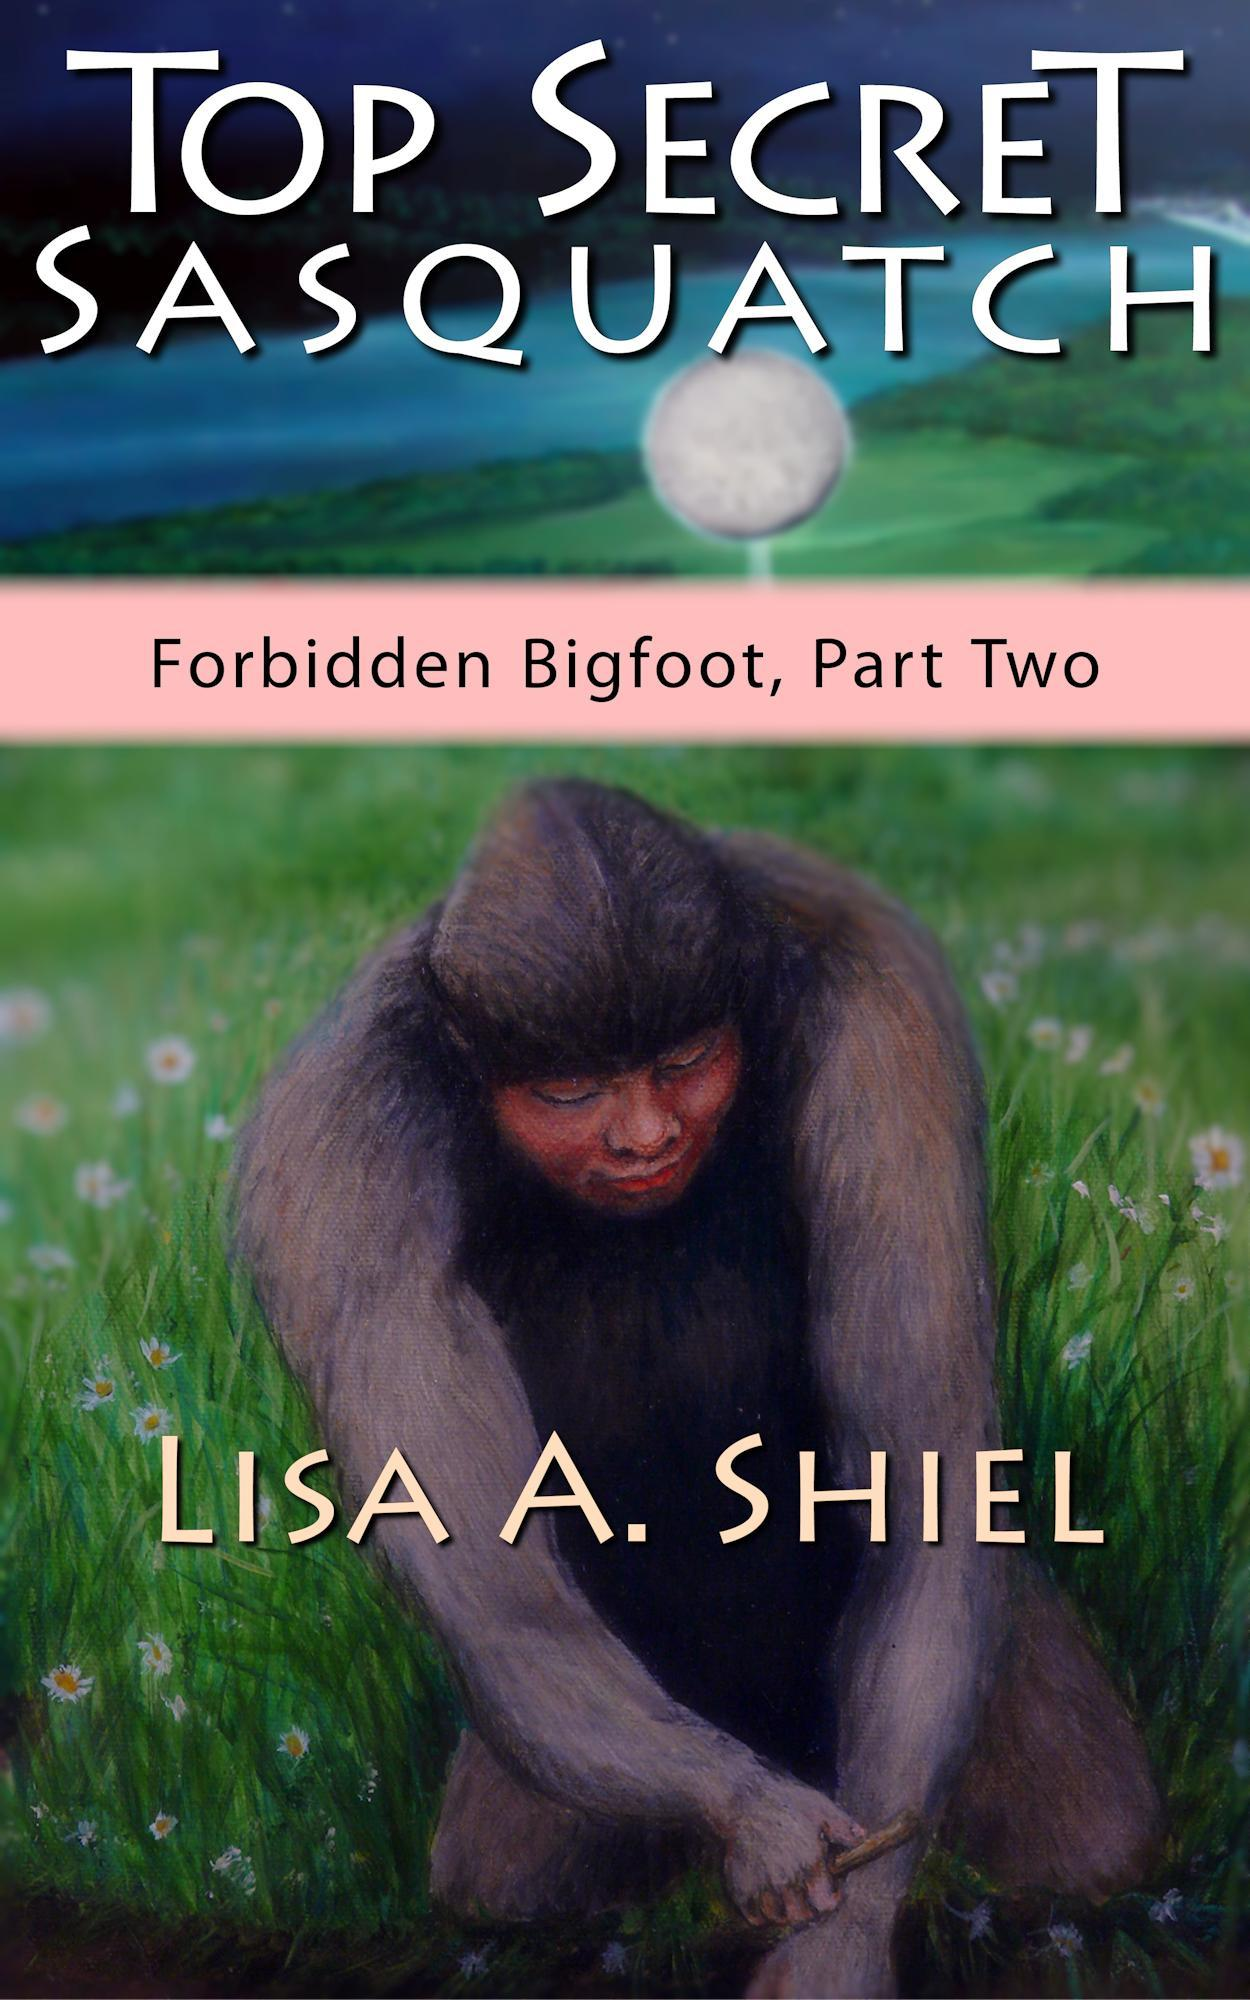 Top Secret Sasquatch: Exposing the True Nature of Bigfoot and Its Controversial Connections to UFOs, the Fossil Record, and Human History (Forbidden B EB9781934631430